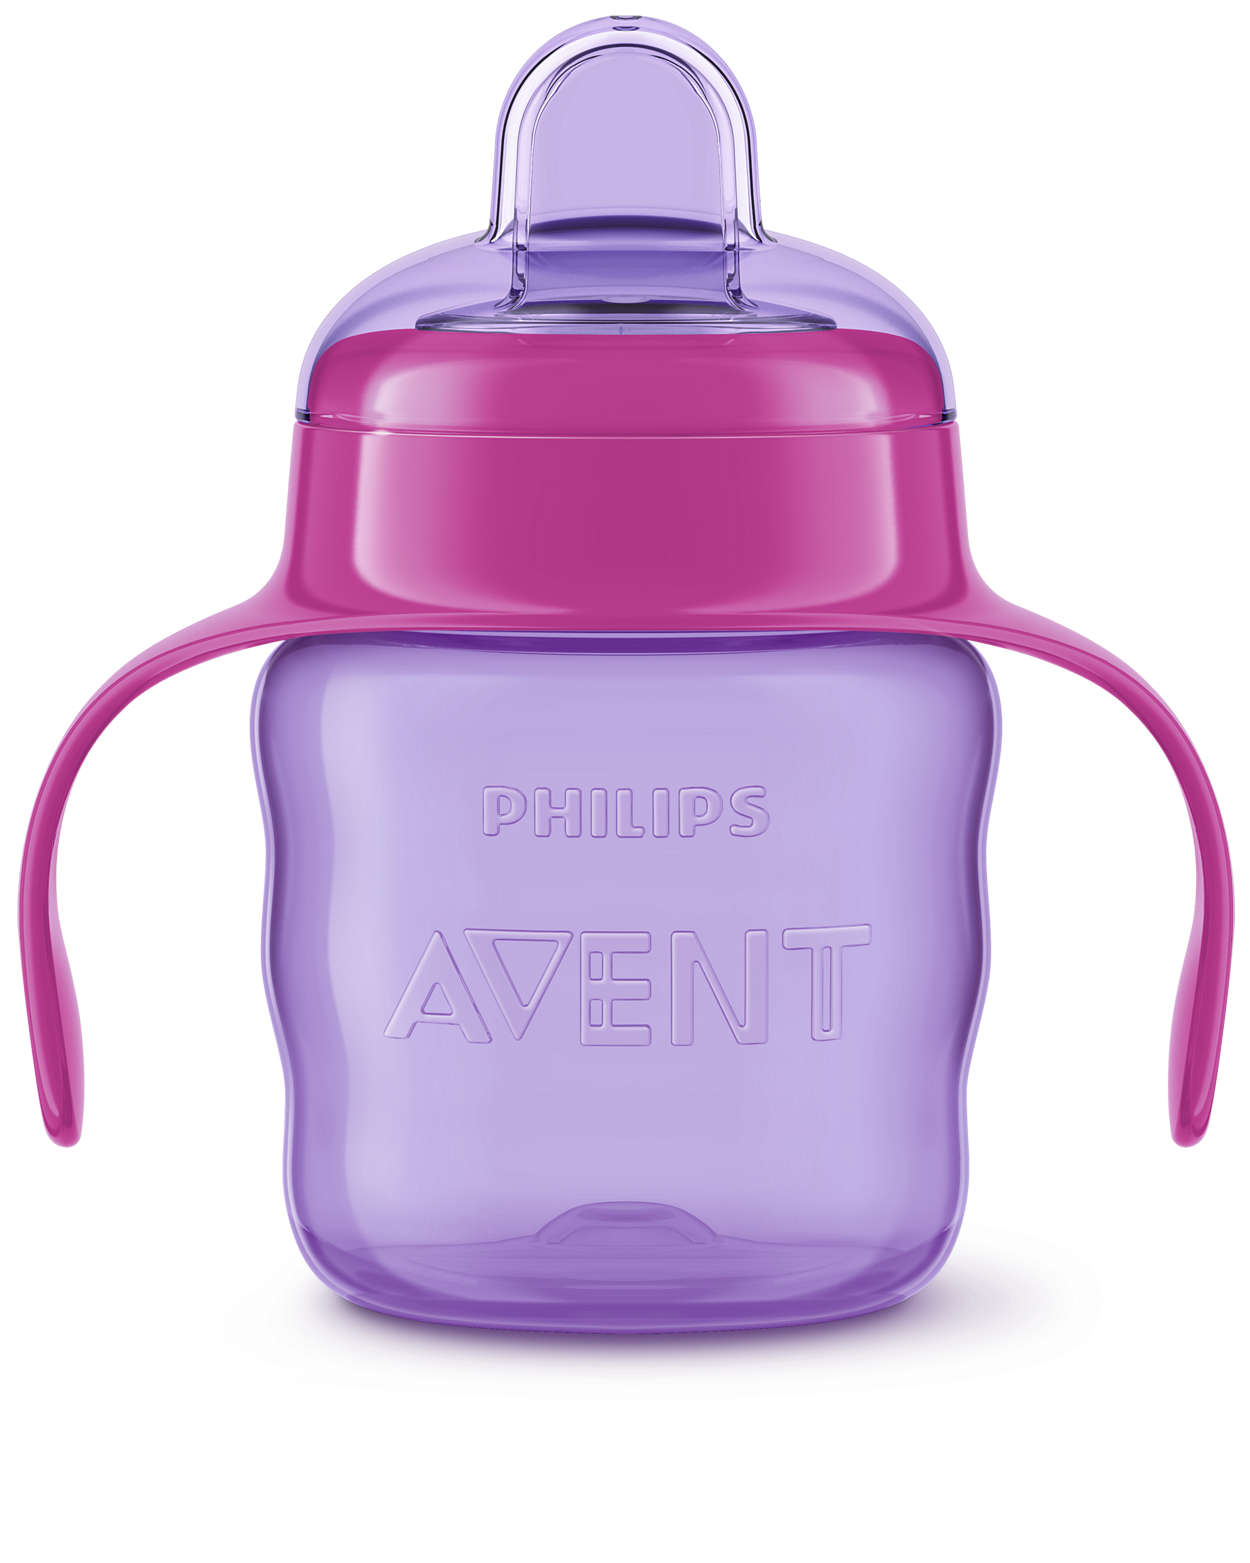 200 ml, Pink Philips Avent Easy Sip Spout Cup with Handle